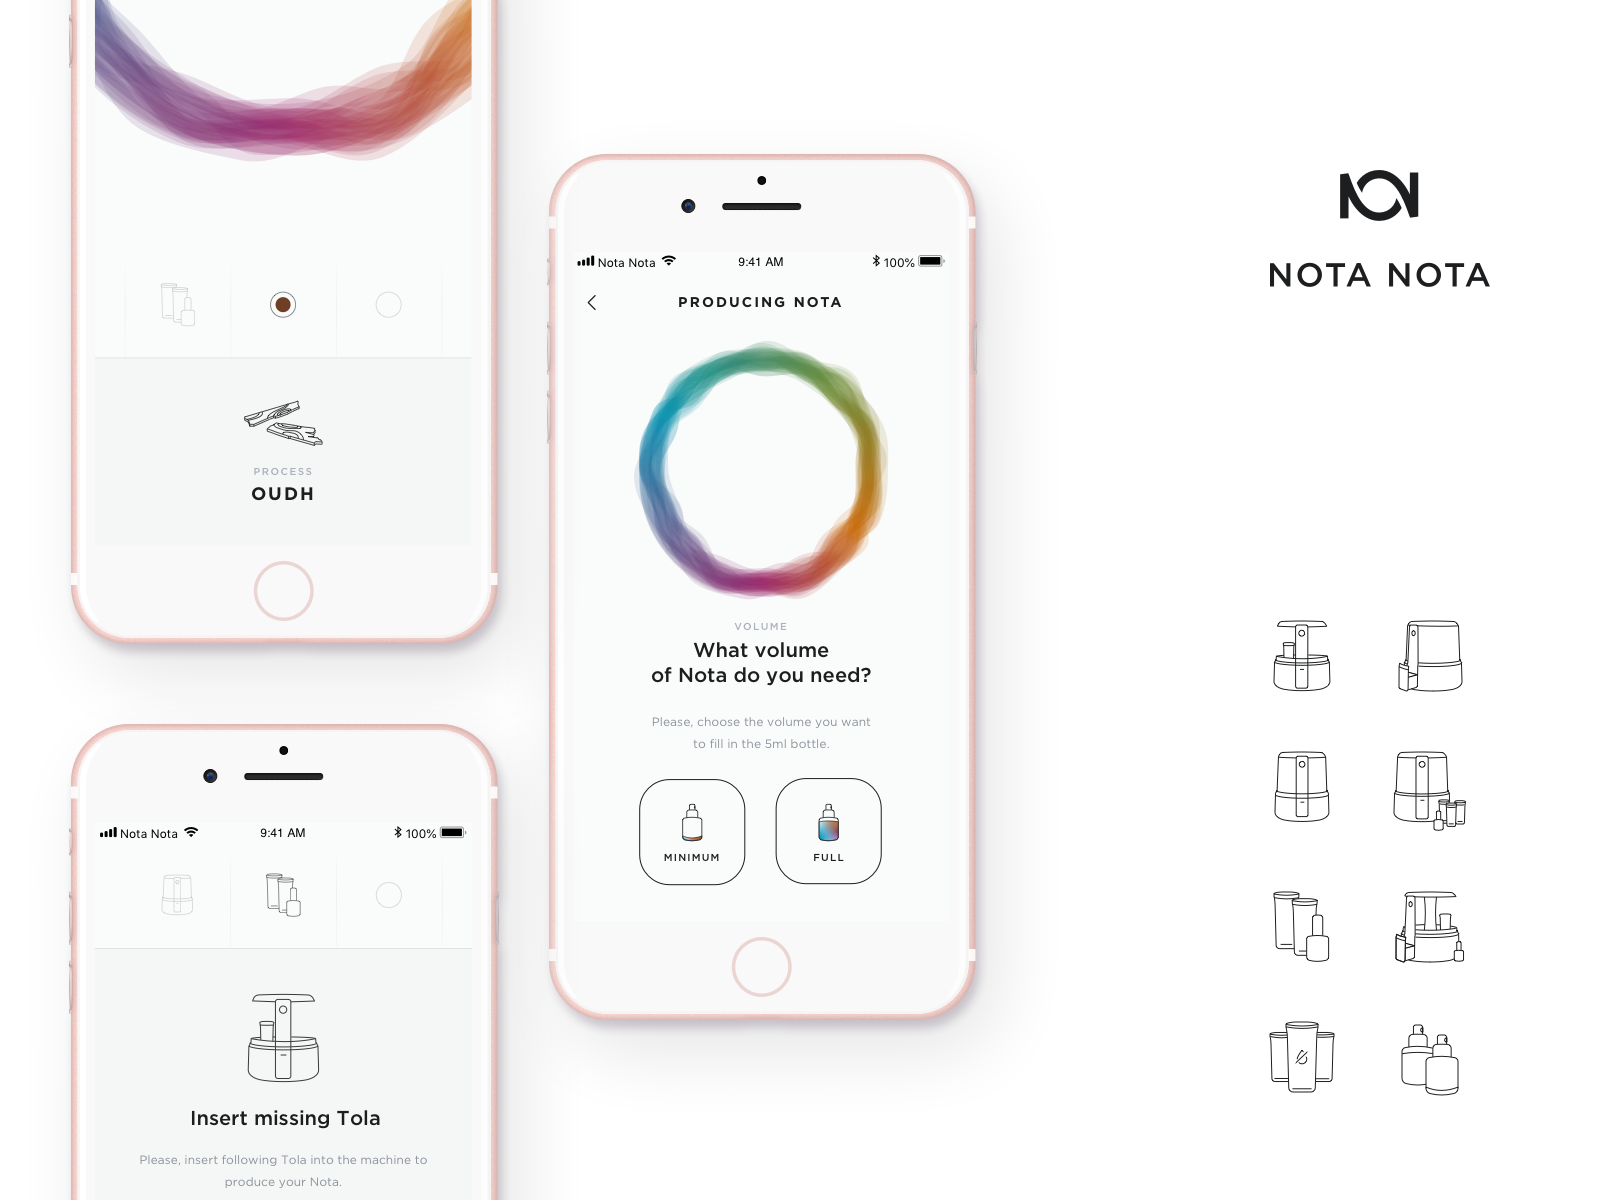 NOTA NOTA - Saudi Arabian IoT App Built with React Native and Django